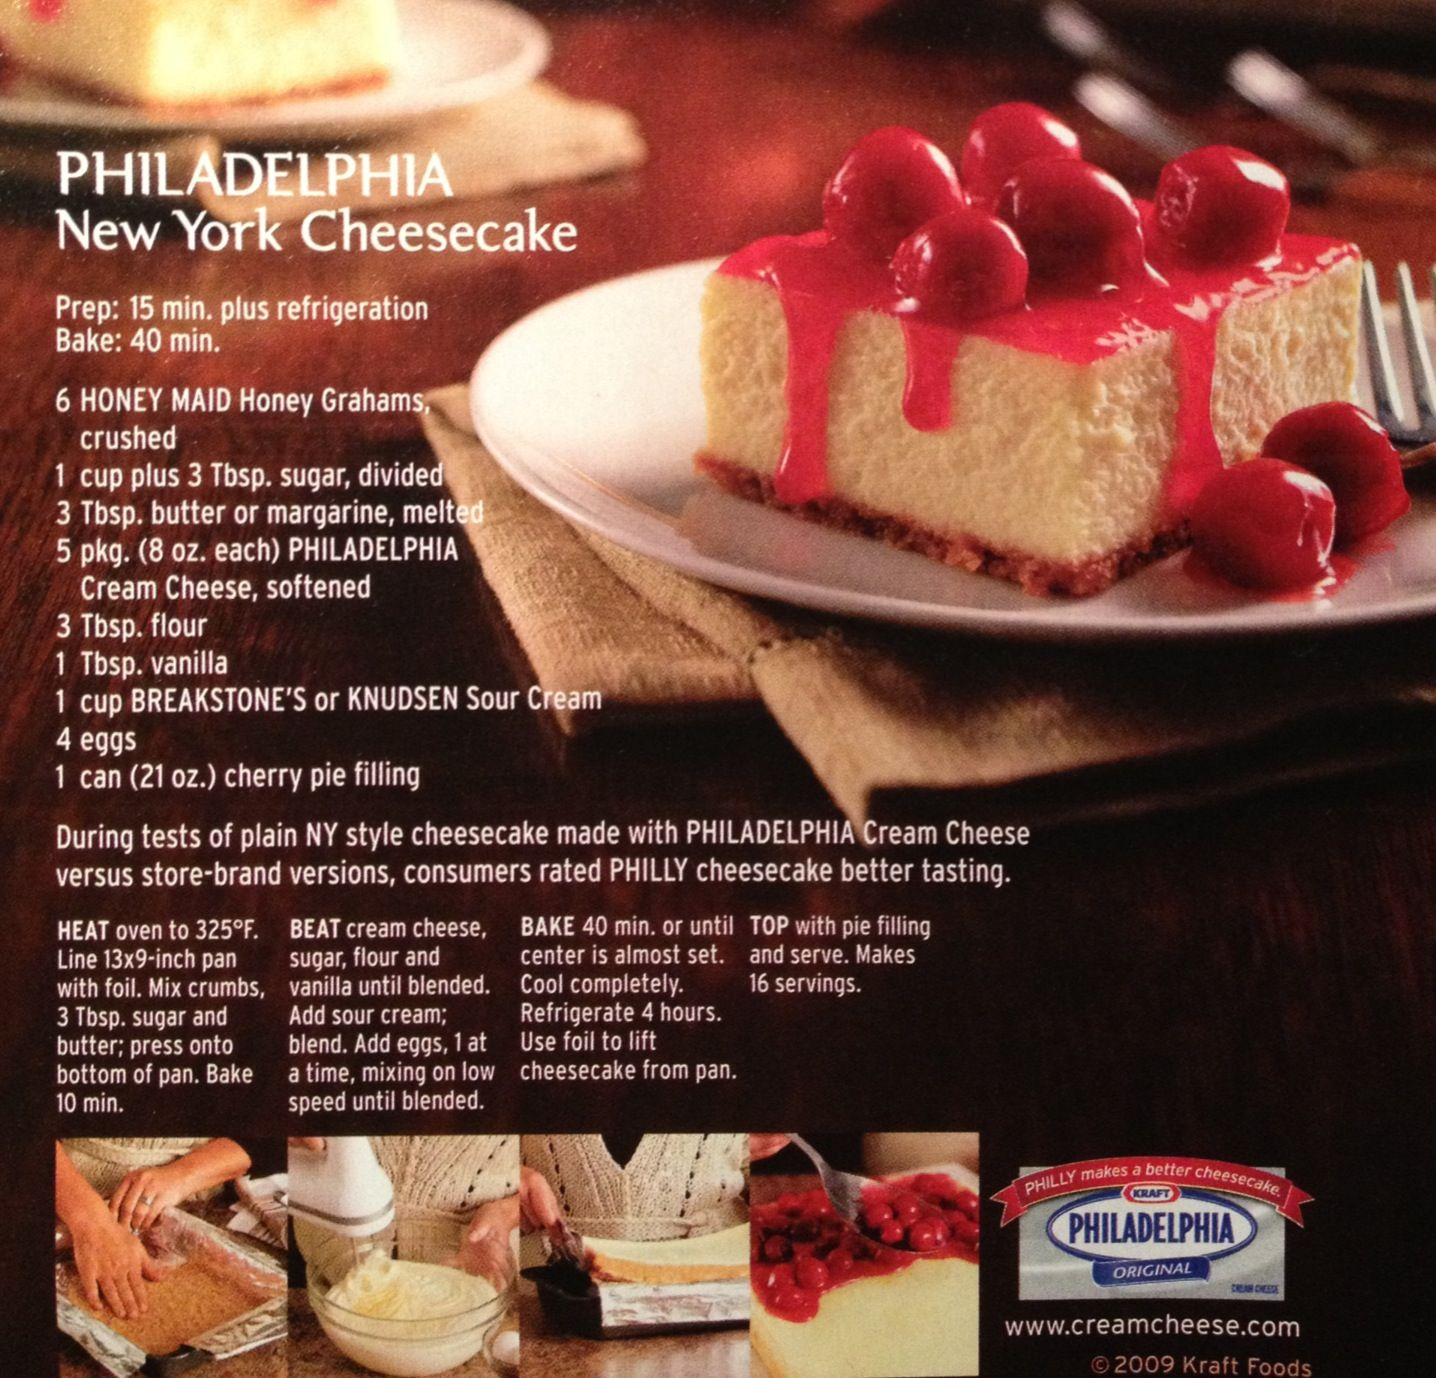 Philadelphia New York Cheesecake New York Cheesecake Easy Cheesecake Recipes Kraft Recipes